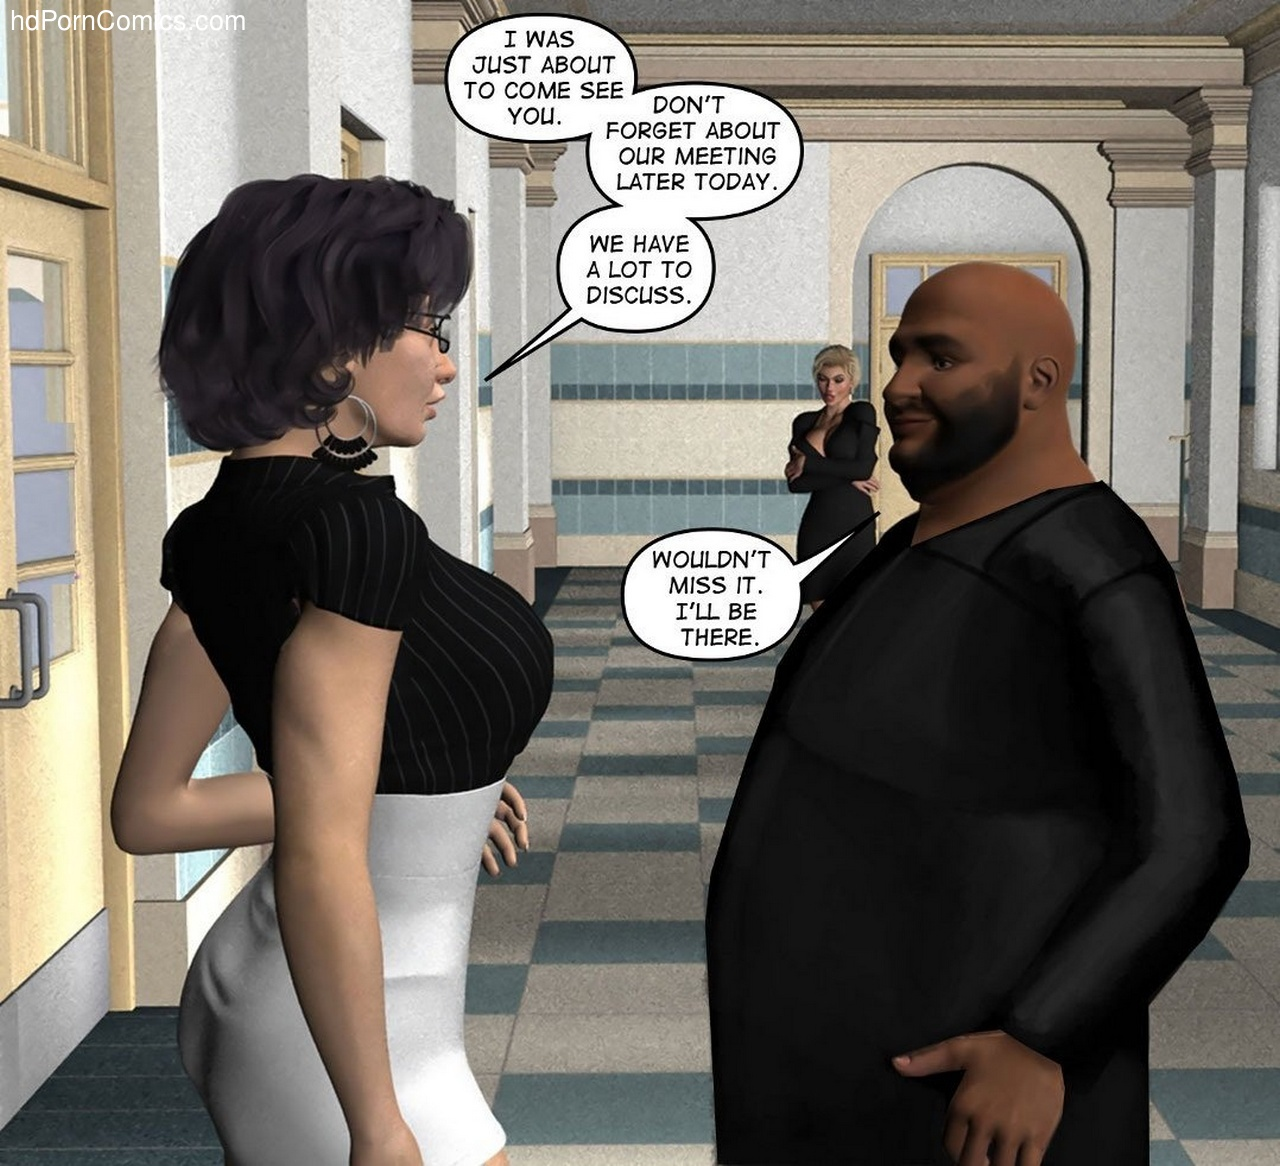 The People's Court 18 free sex comic